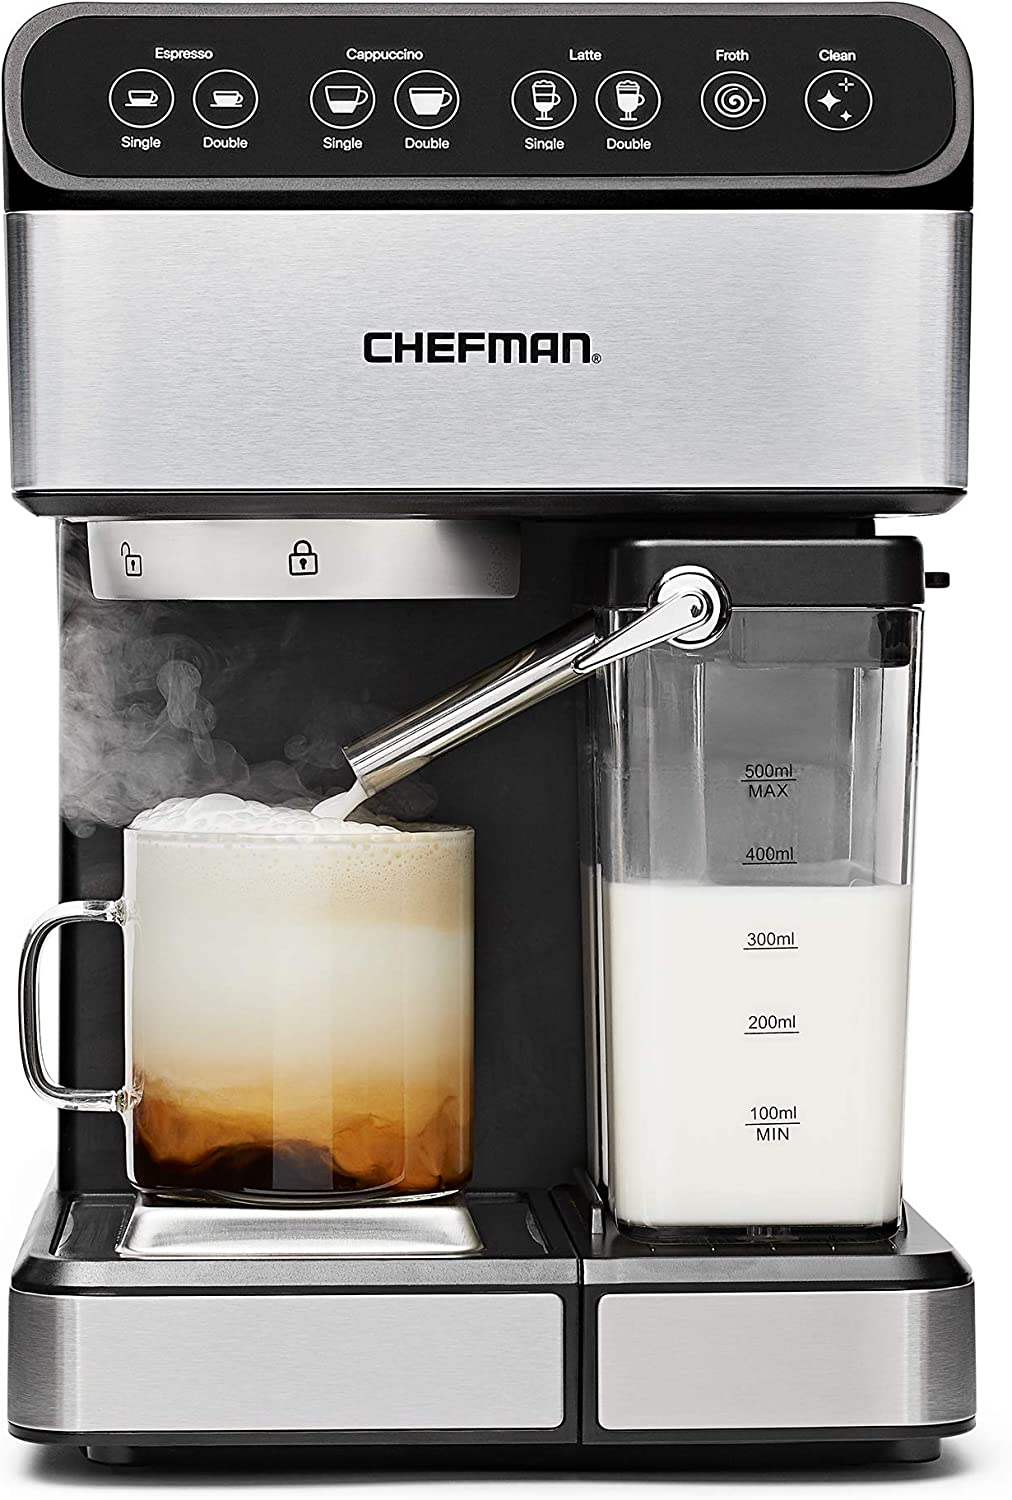 Chefman 6-in-1 Espresso Machine Powerful 15-Bar Pump, Brew Single or Double Shot, Built-In Milk Froth for Cappuccino & Latte Coffee, XL 1.8 Liter Water Reservoir, Dishwasher-Safe Parts,Stainless Steel